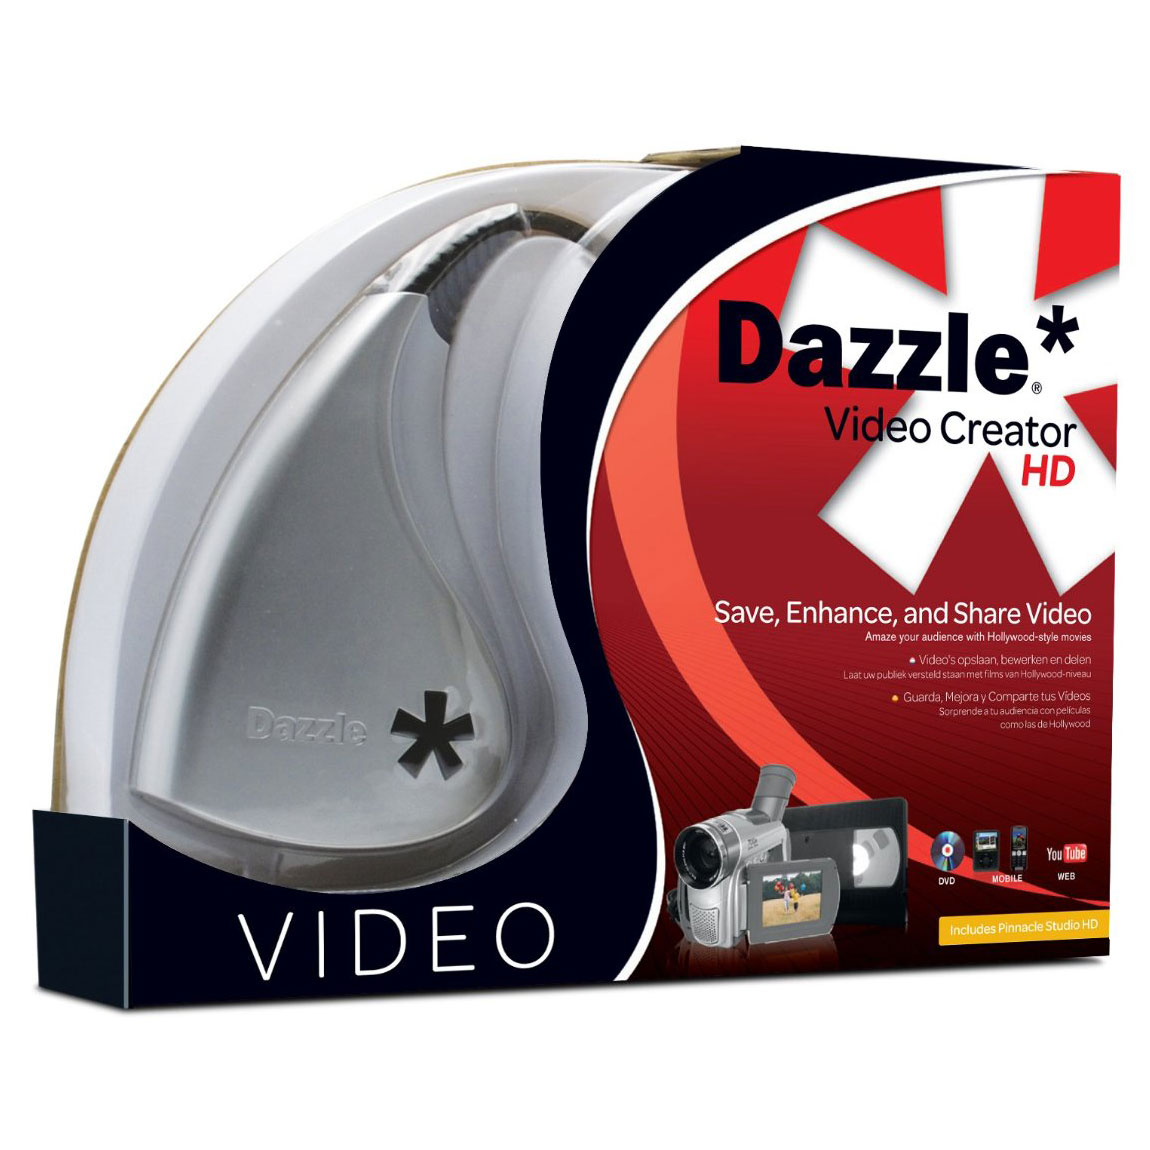 Carte d'acquisition Dazzle Video Creator HD Carte d'acquisition vidéo